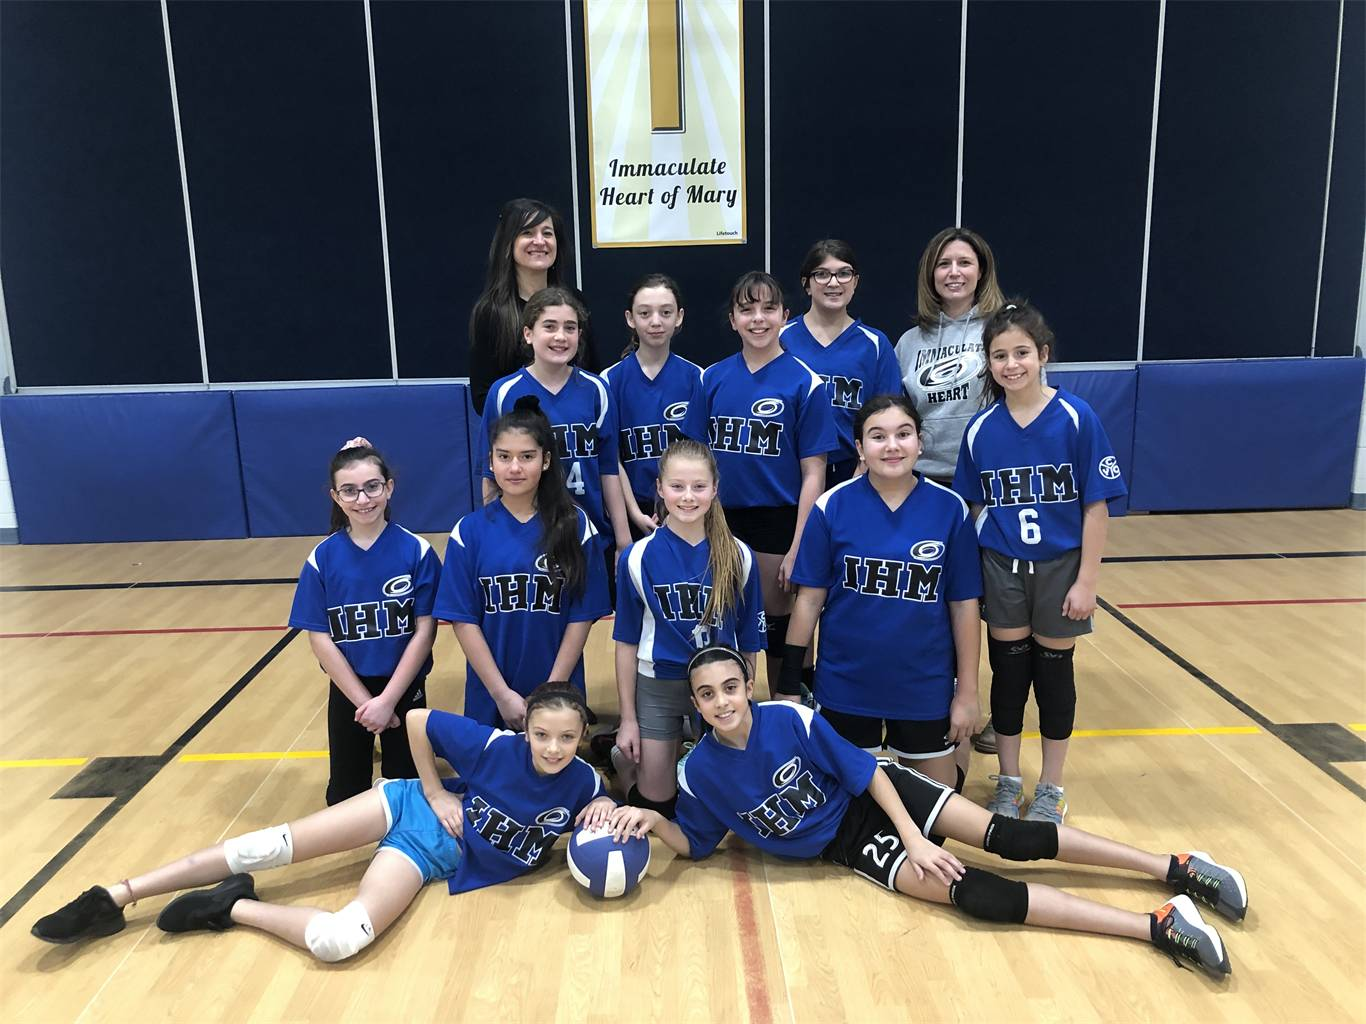 Jr Girls Volleyball Team-updated Feb 19th